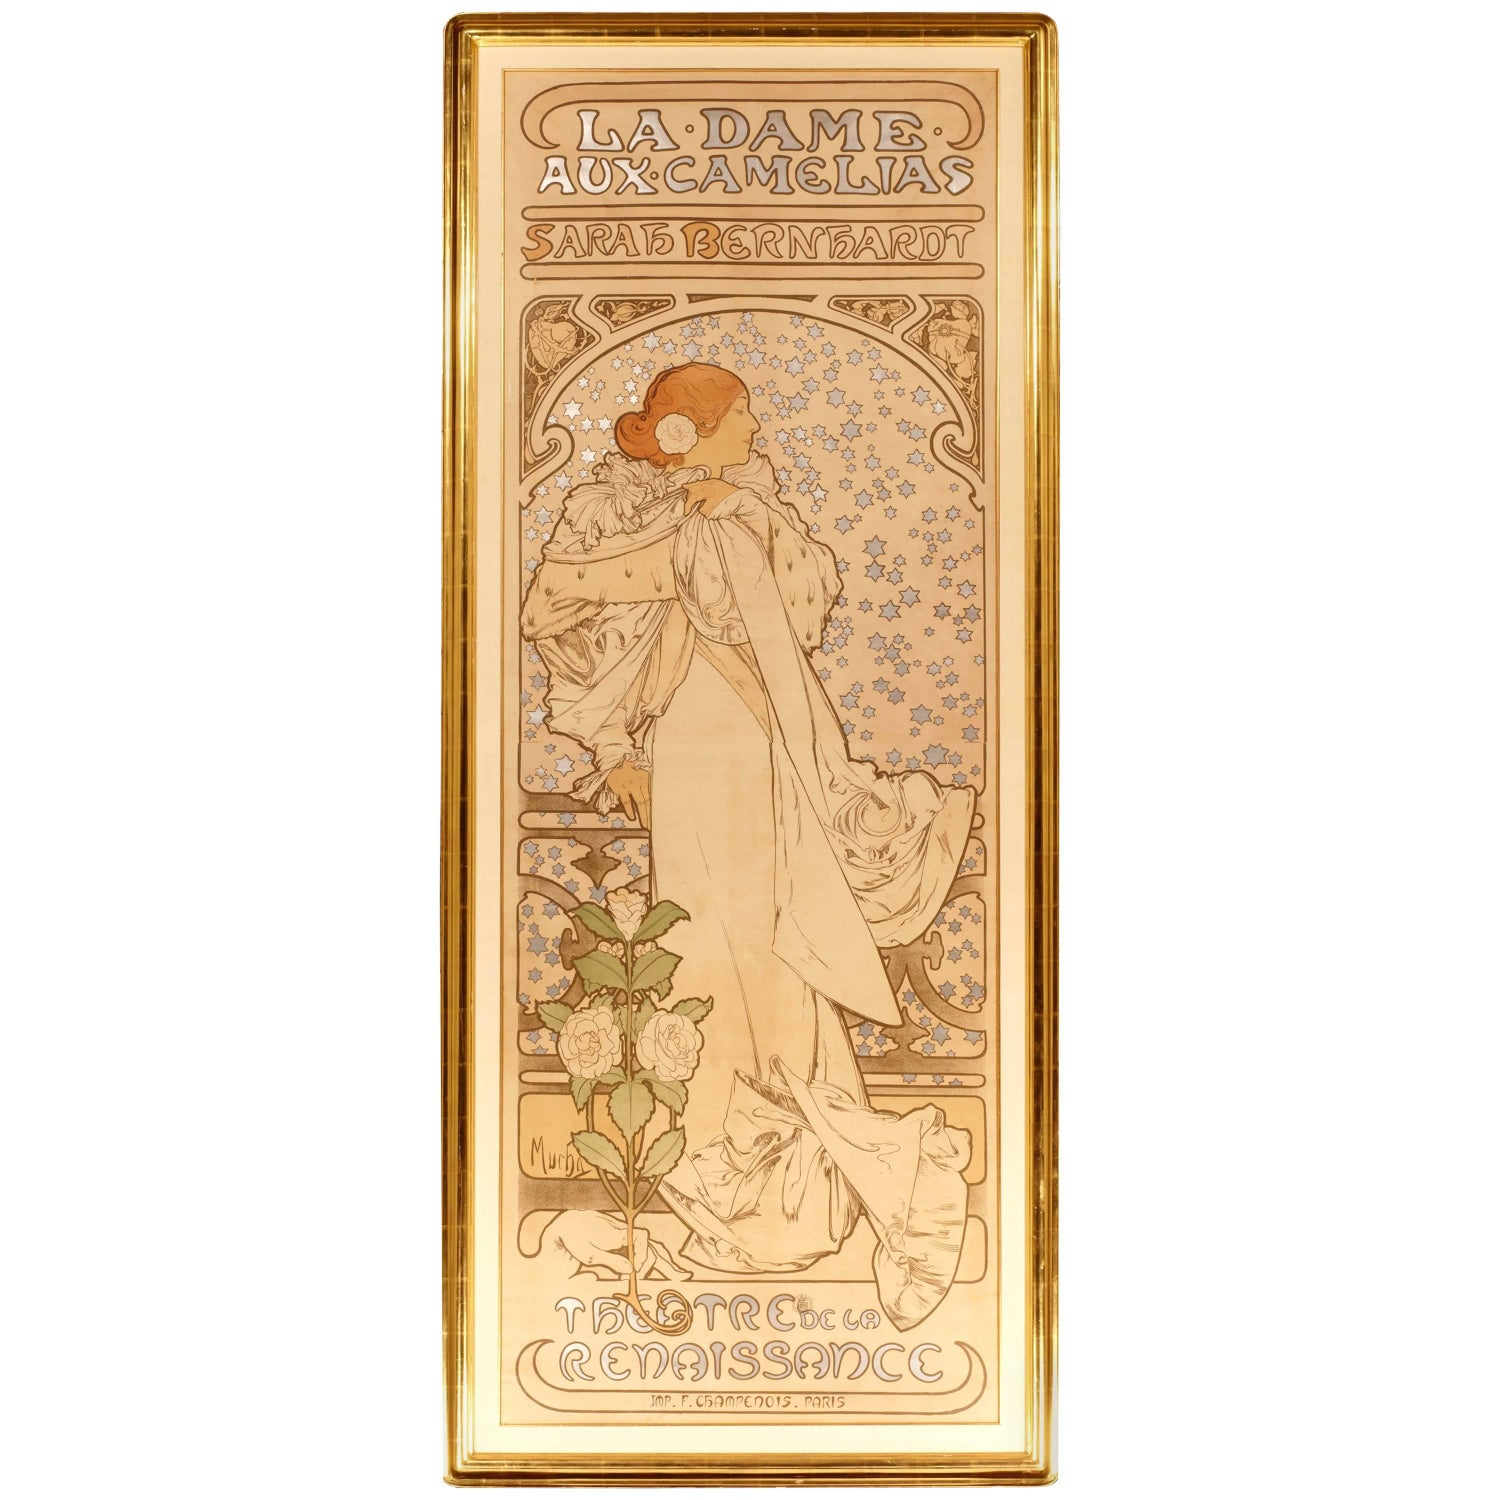 Art Nouveau Wall Decorations - 216 For Sale at 1stdibs